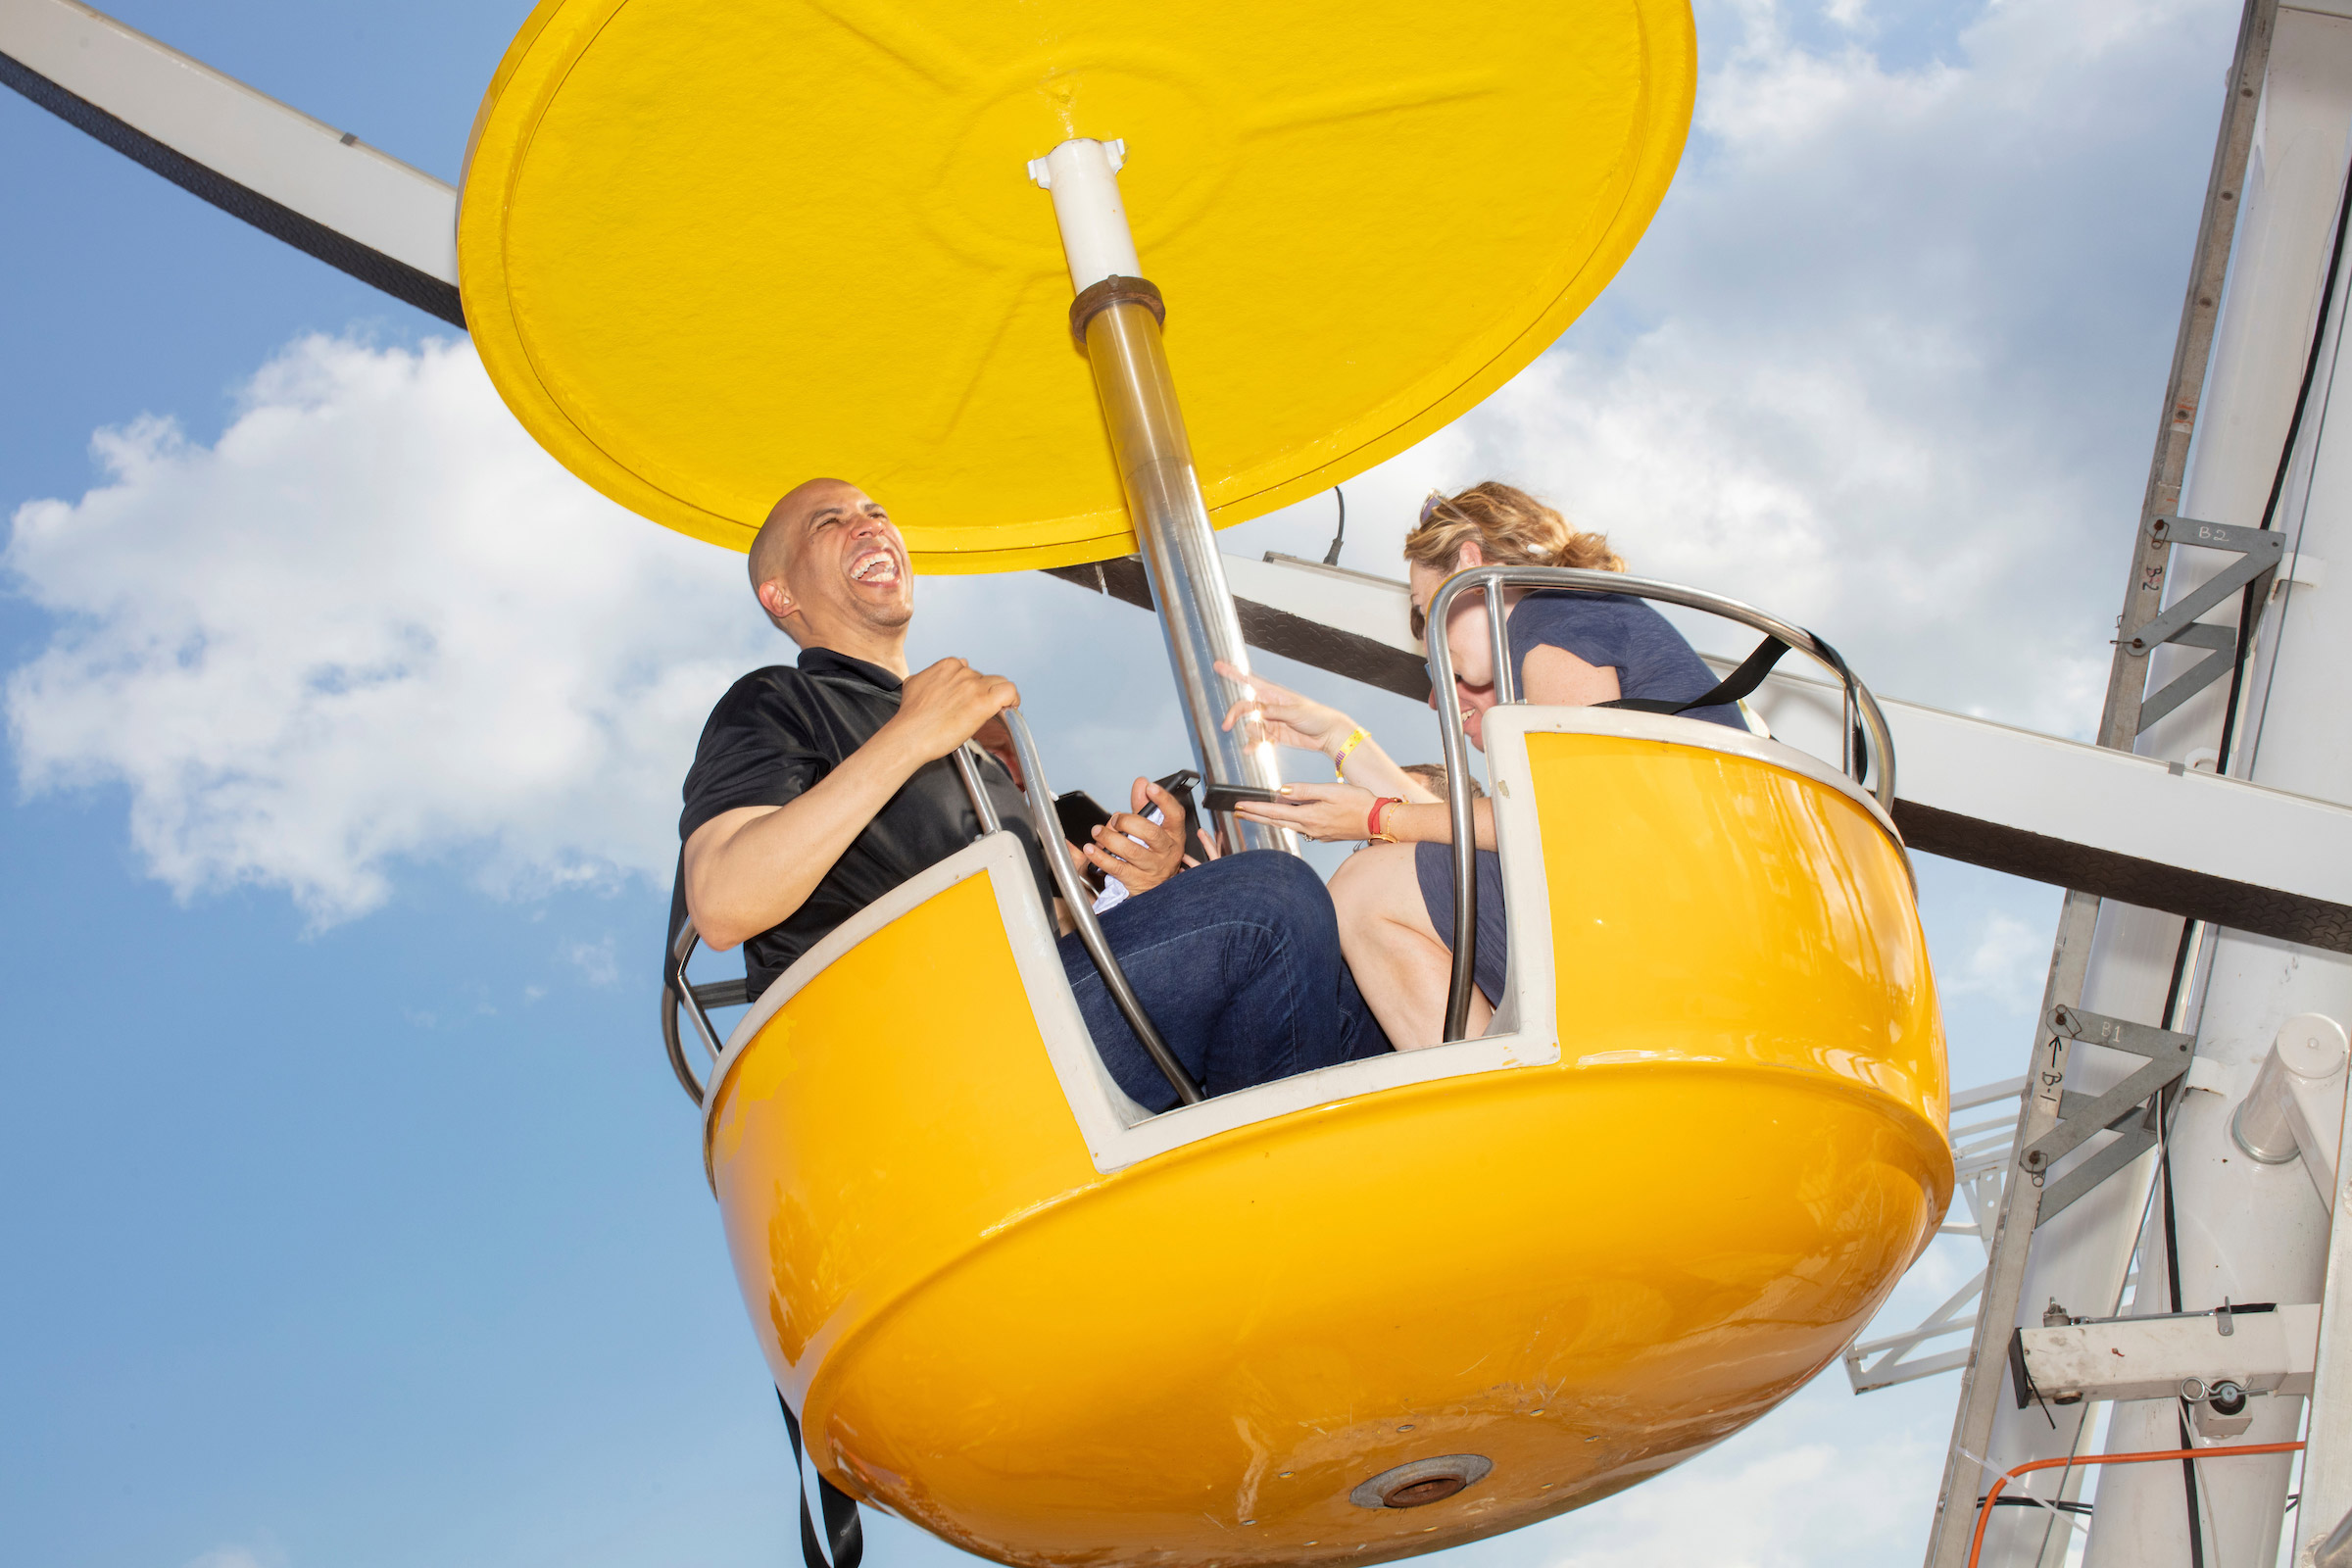 Democratic presidential candidate Cory Booker rides the ferris wheel on Aug. 10.